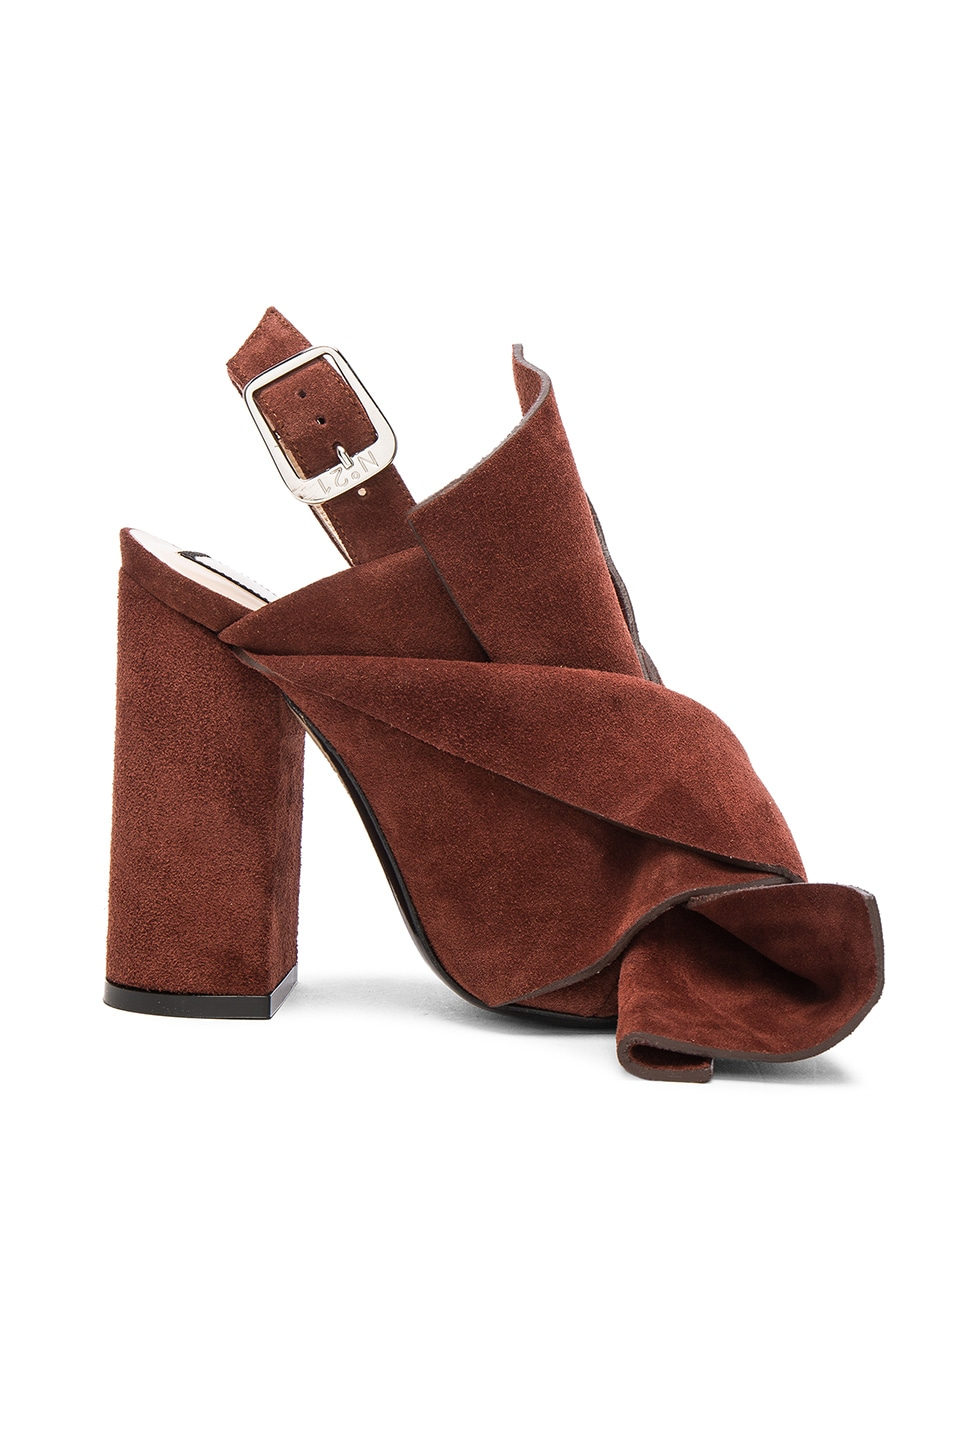 Image 1 of No. 21 Suede Bow Heels in Muscat